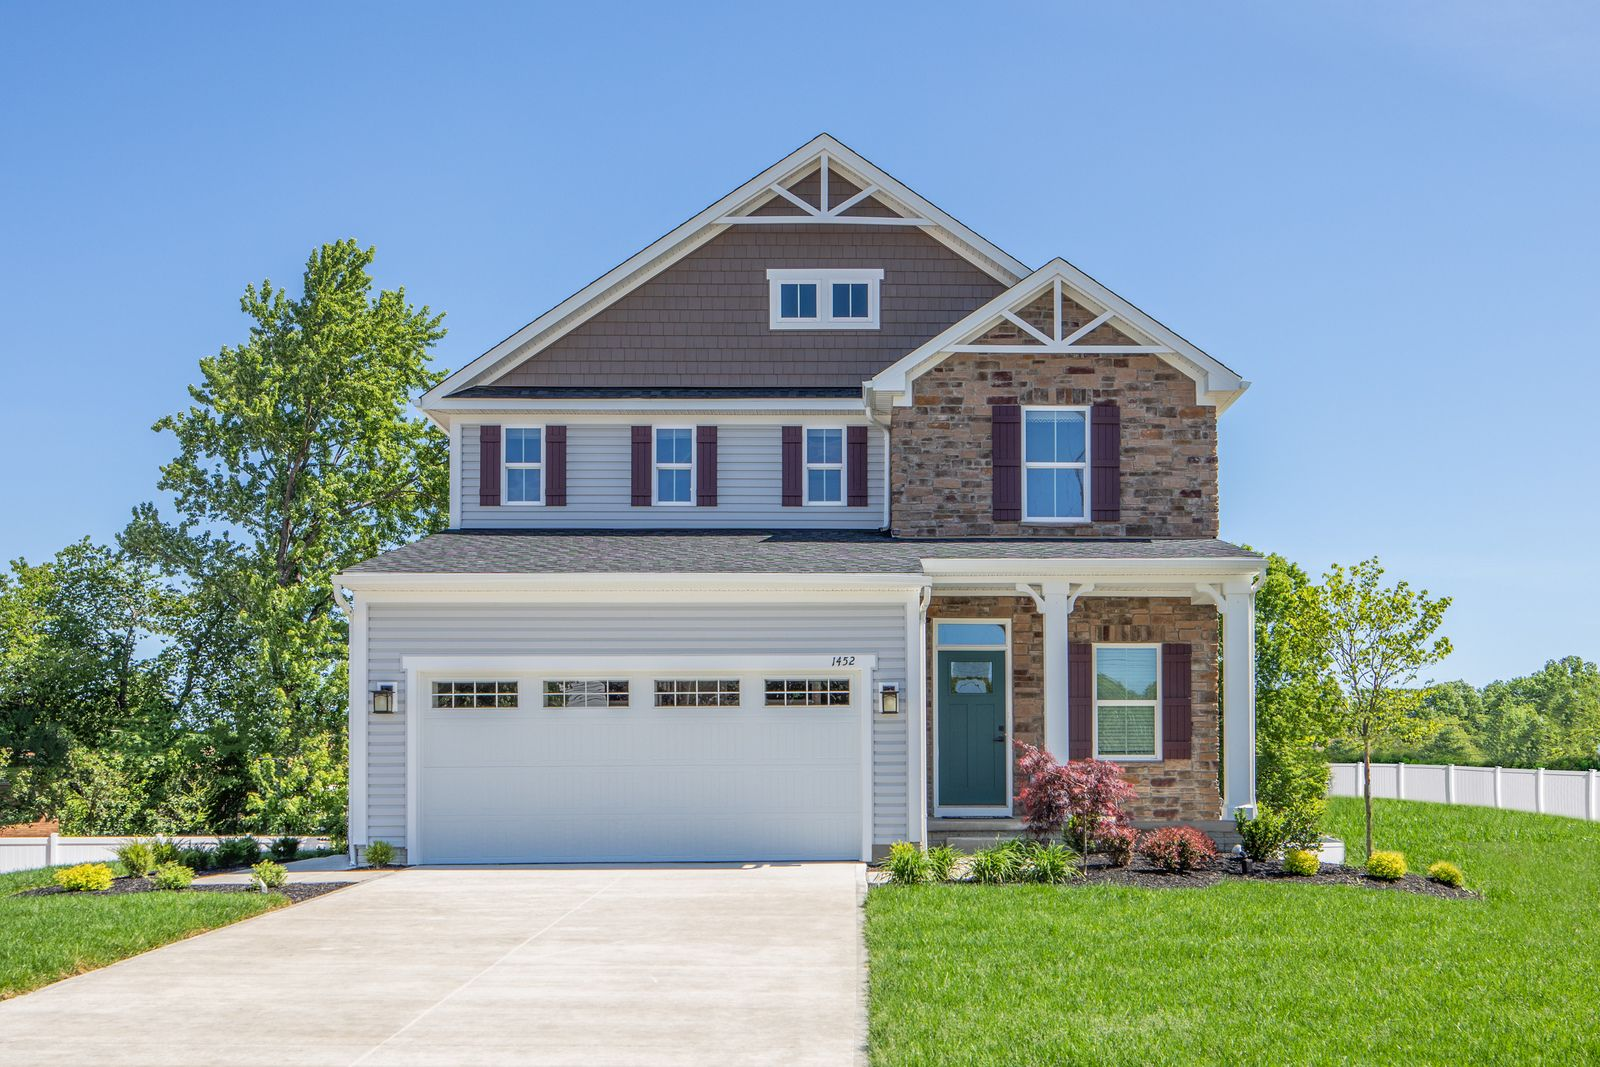 WELCOME TO WATERFORD LANDING:Variety of private and walk-out basement homesites, low property taxes, and just minutes from WPAFB from the mid $200s.Click here to schedule your visit today!